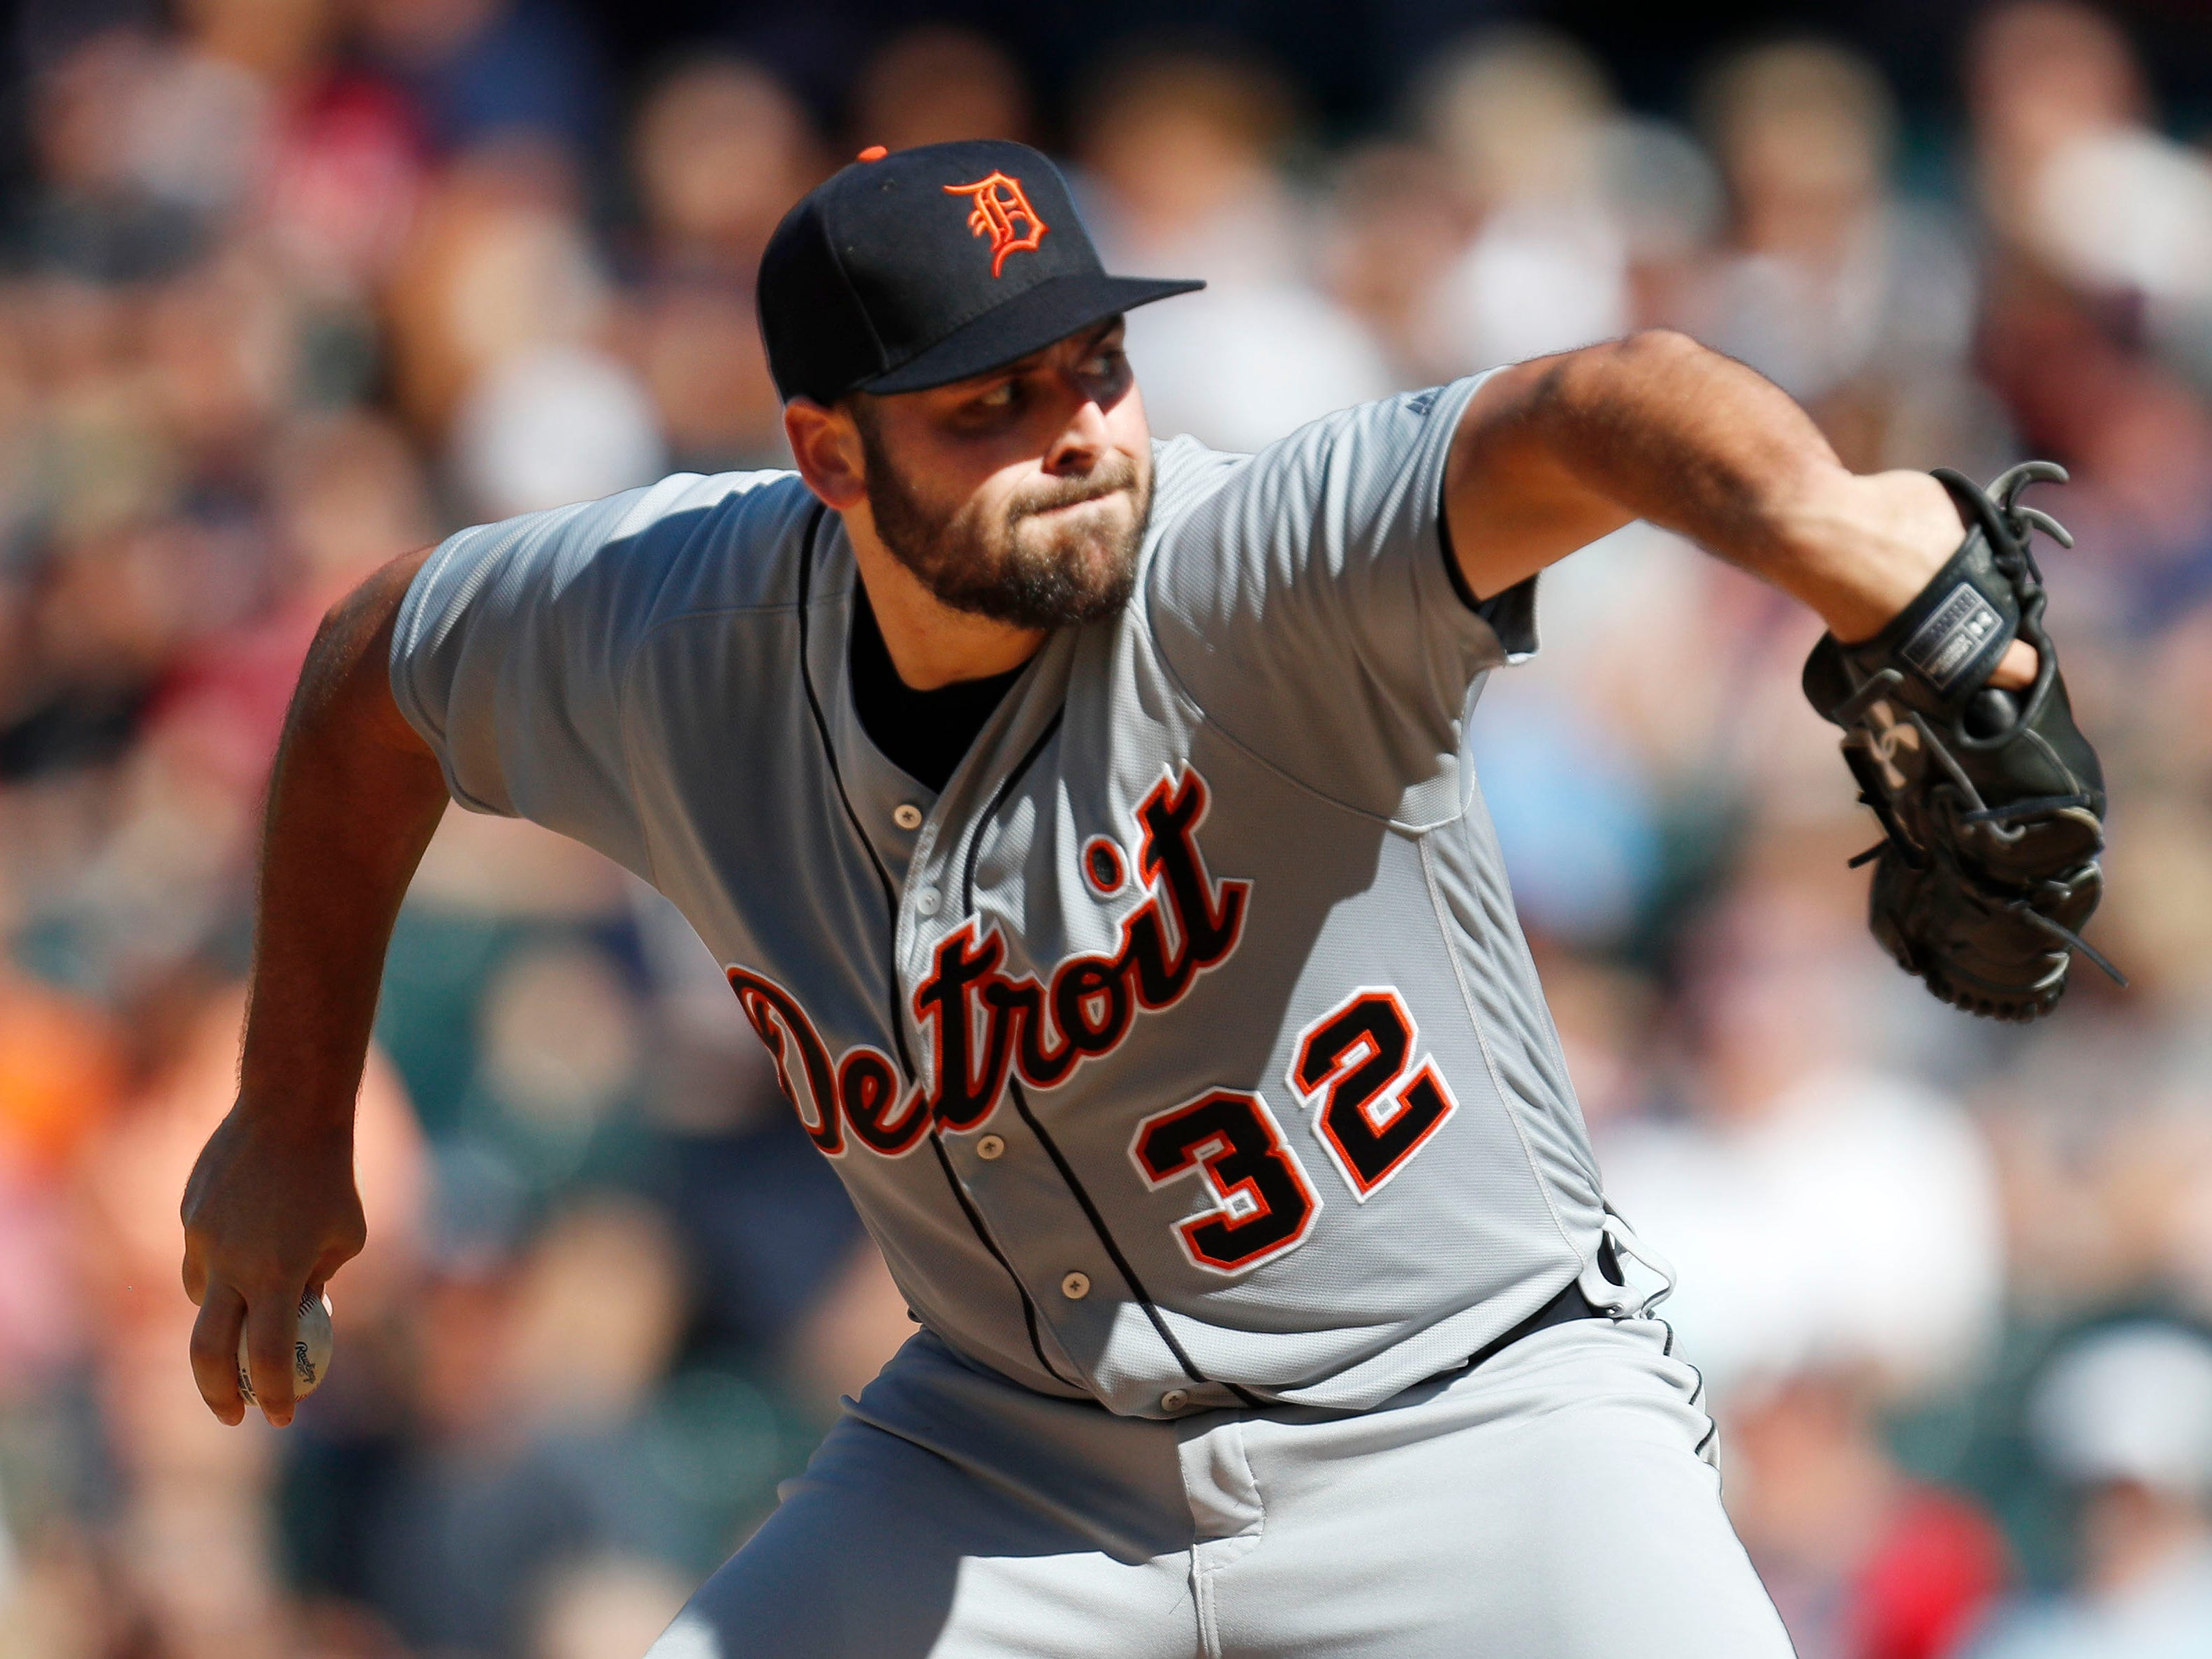 Starting rotation: 1. Michael Fulmer: The ace of the staff based on recent reputation, though his injury history is starting to pile up just as high.